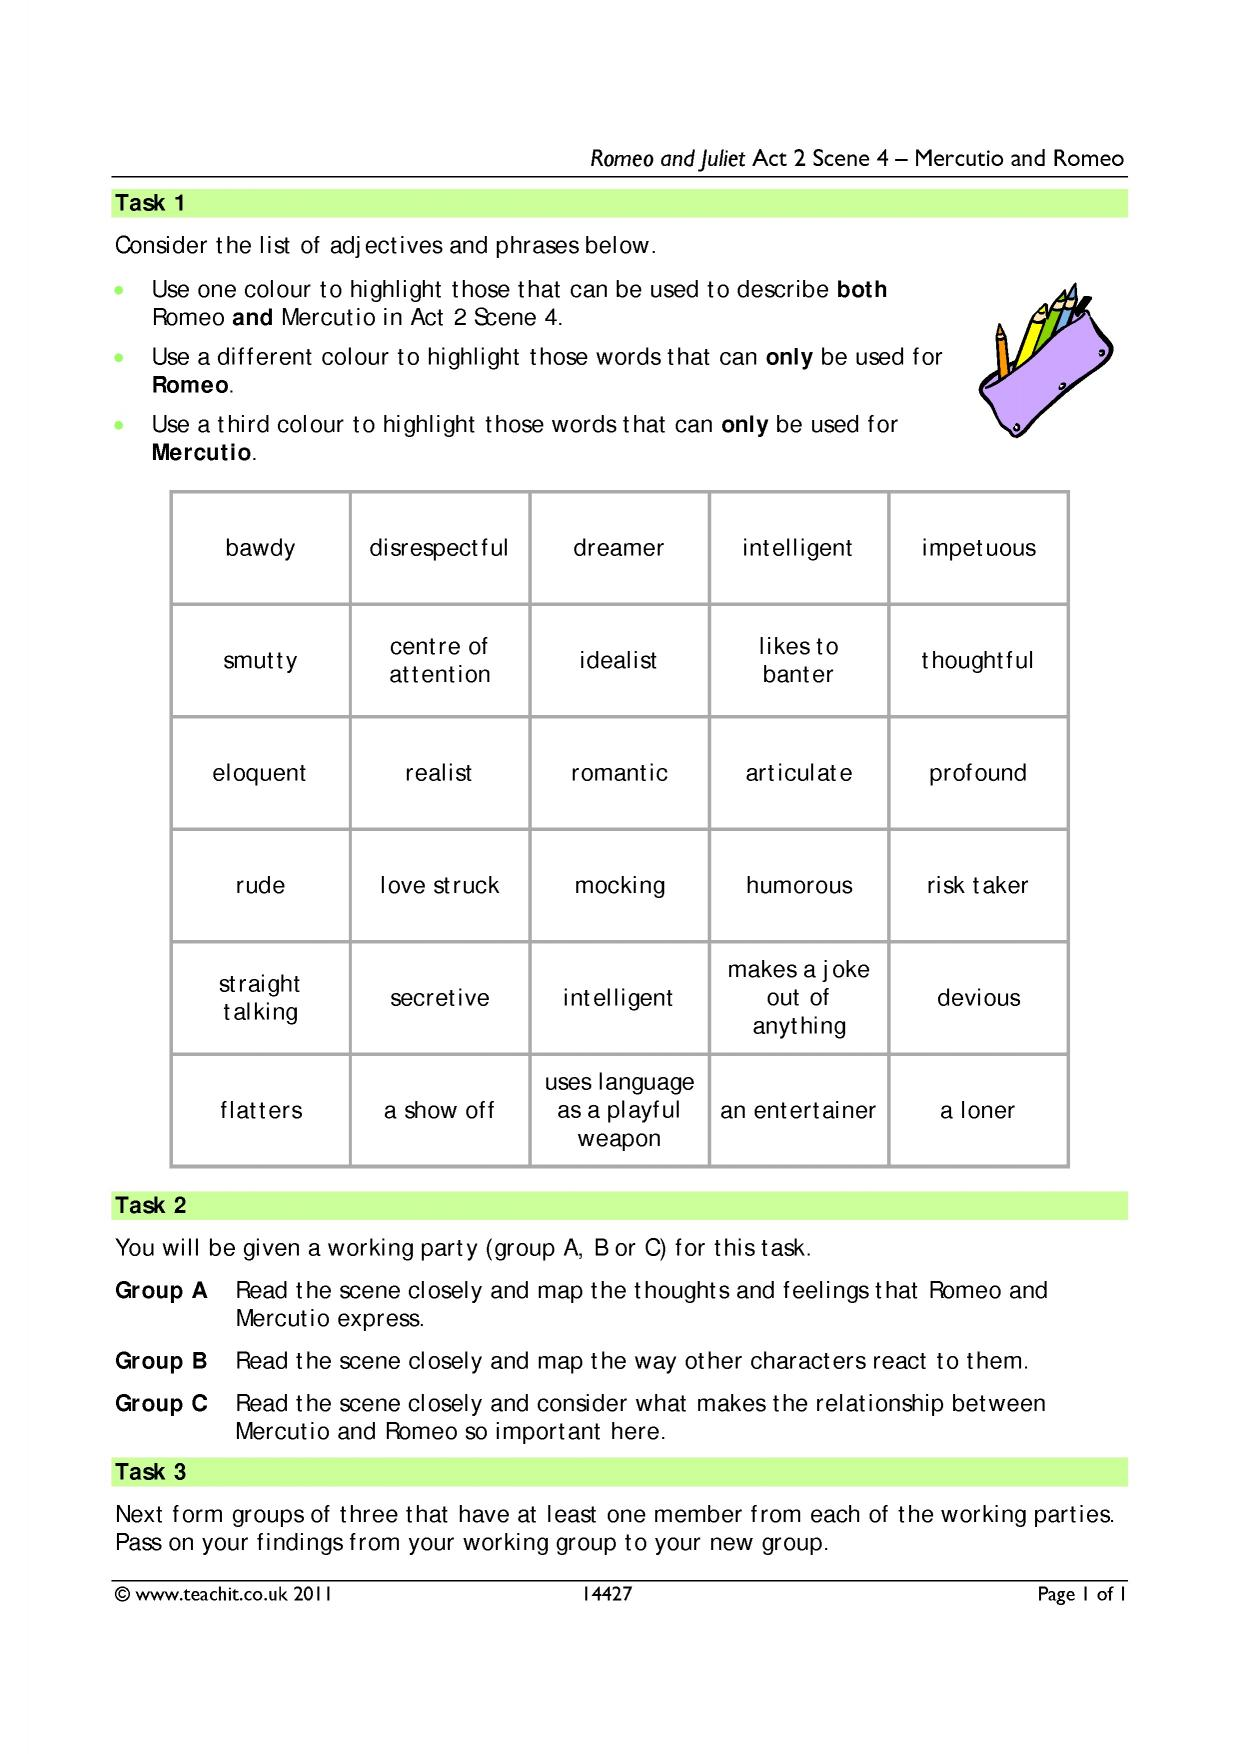 romeo juliet act v study questions essay Through the study of romeo & juliet prepare rubrics for the group scene presentation and the mini essay banishment questions quiz on act 3 hw: read rest of 35.